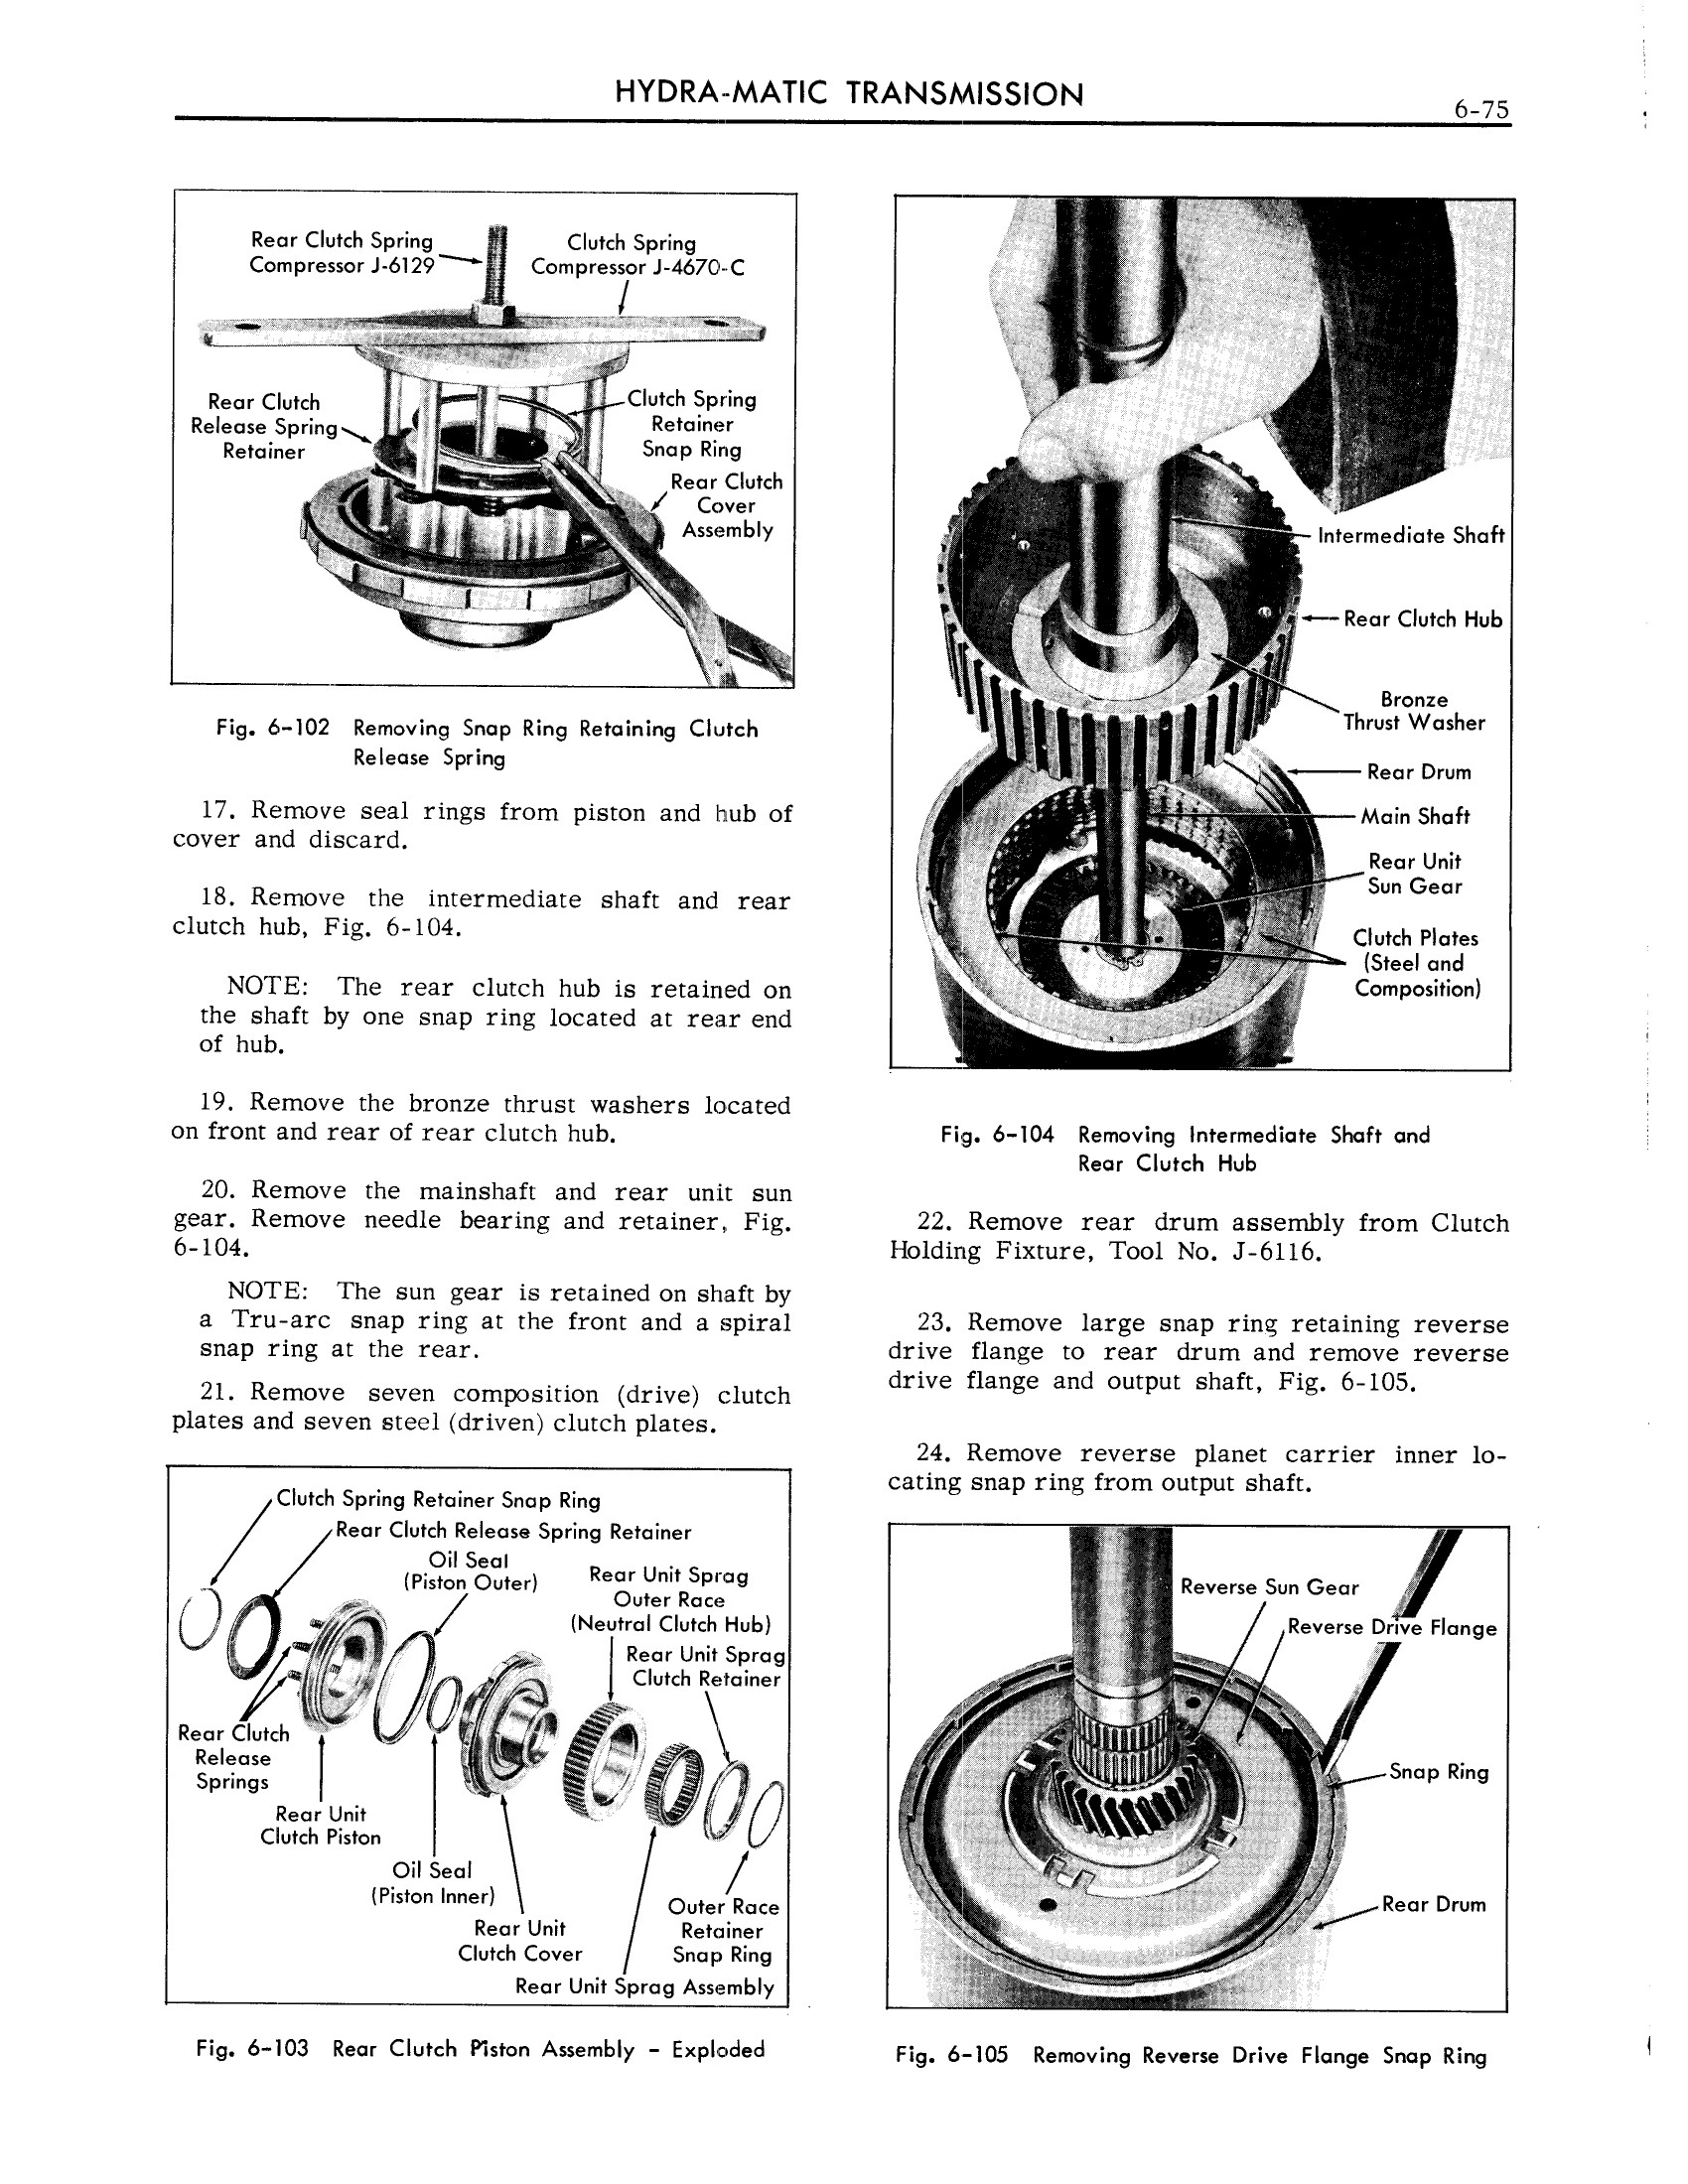 1959 Cadillac Shop Manual- Hydra-Matic Page 75 of 89